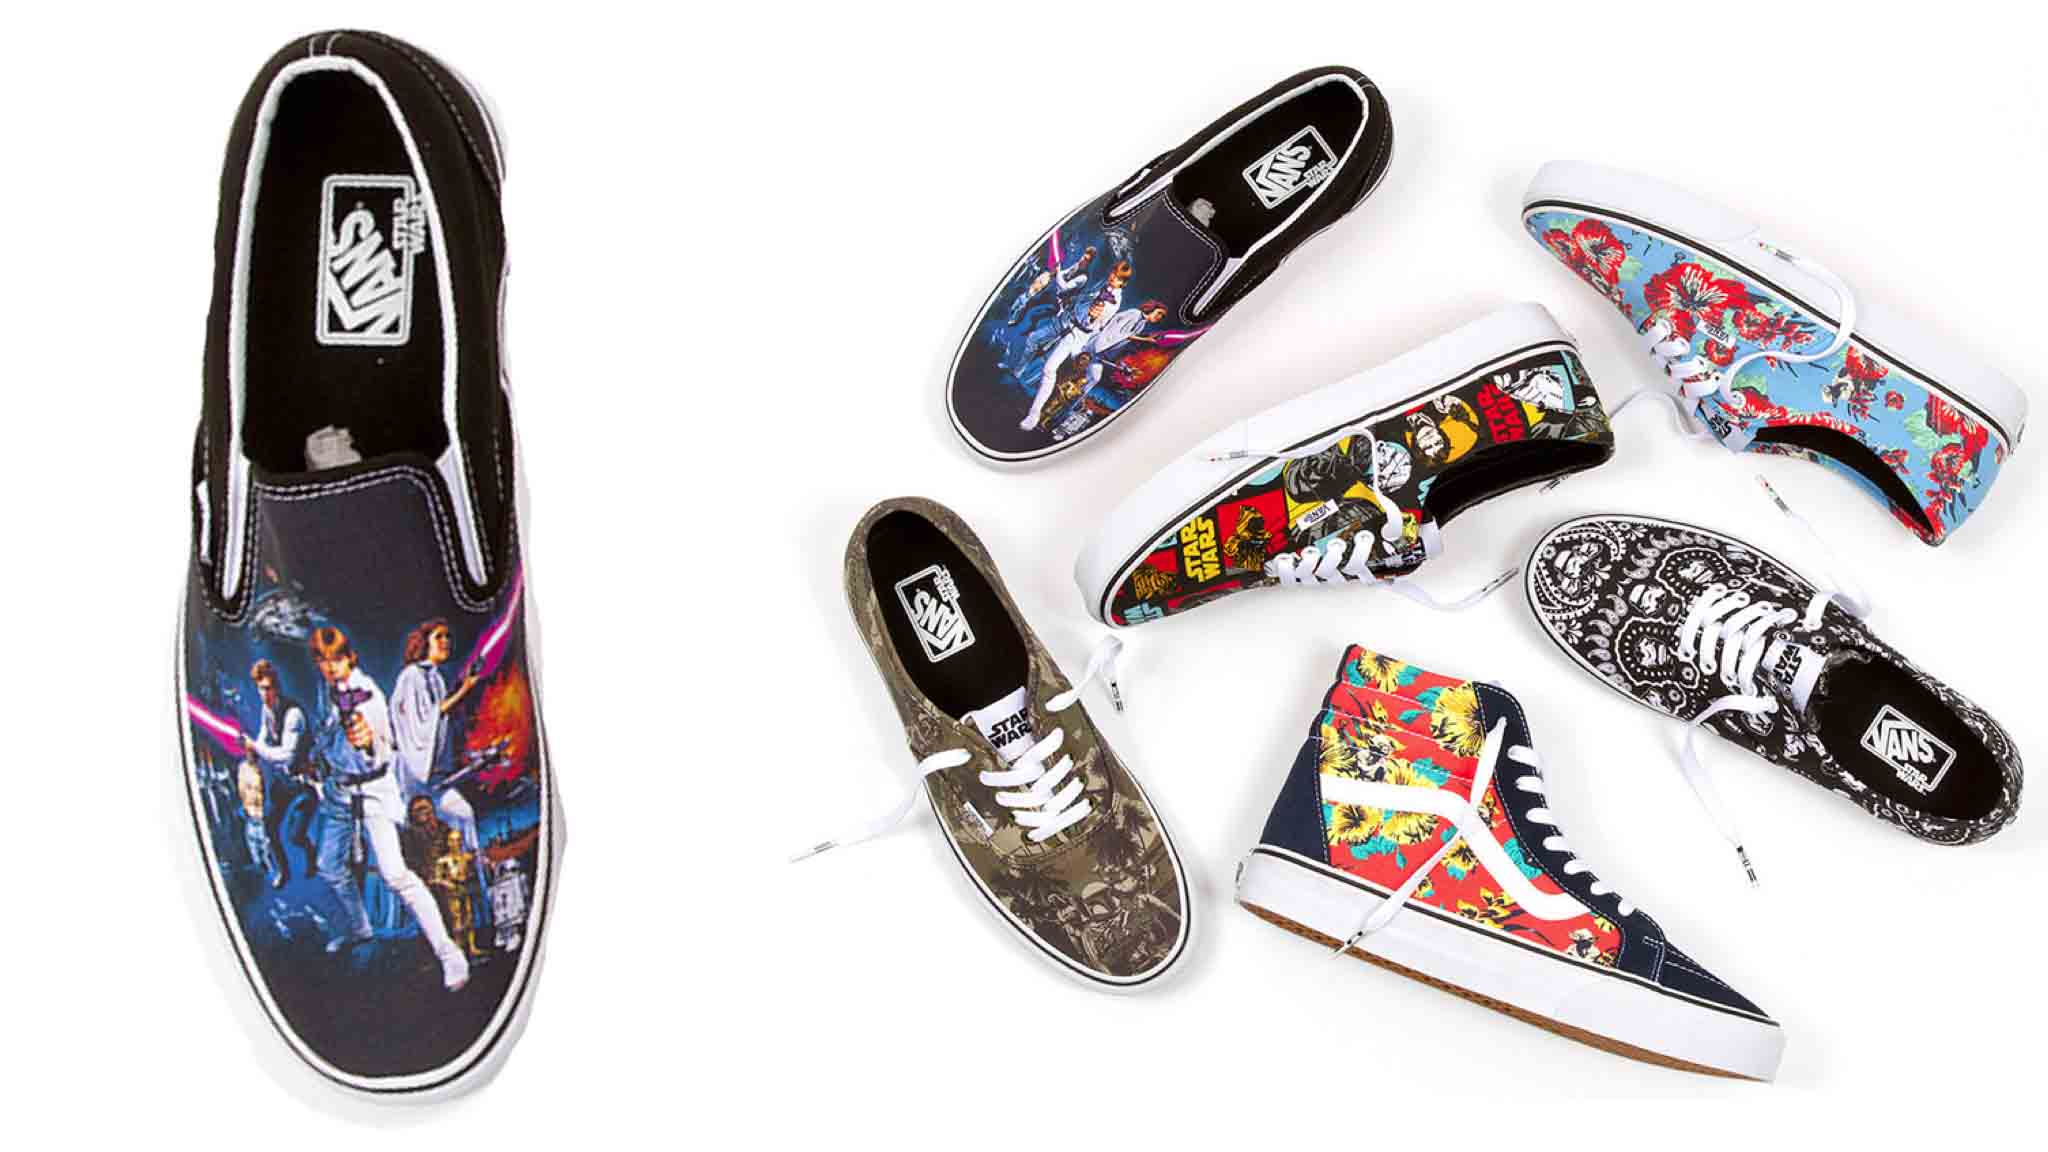 Introducing the new Star Wars collection from Vans, available June 1.